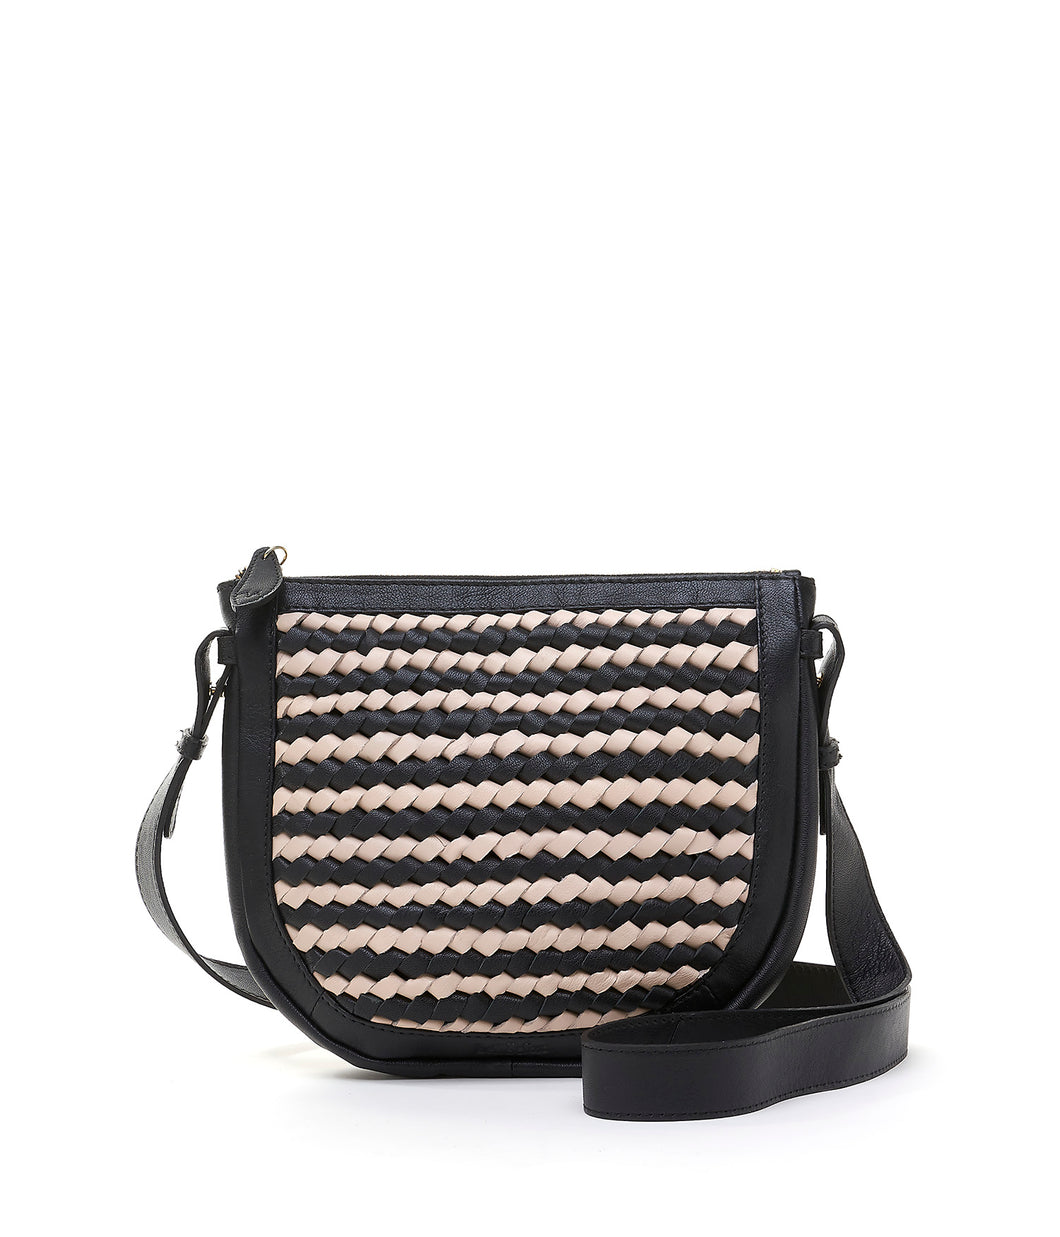 Bell & Fox Caro Leather Cross Body Bag- Black and Cream